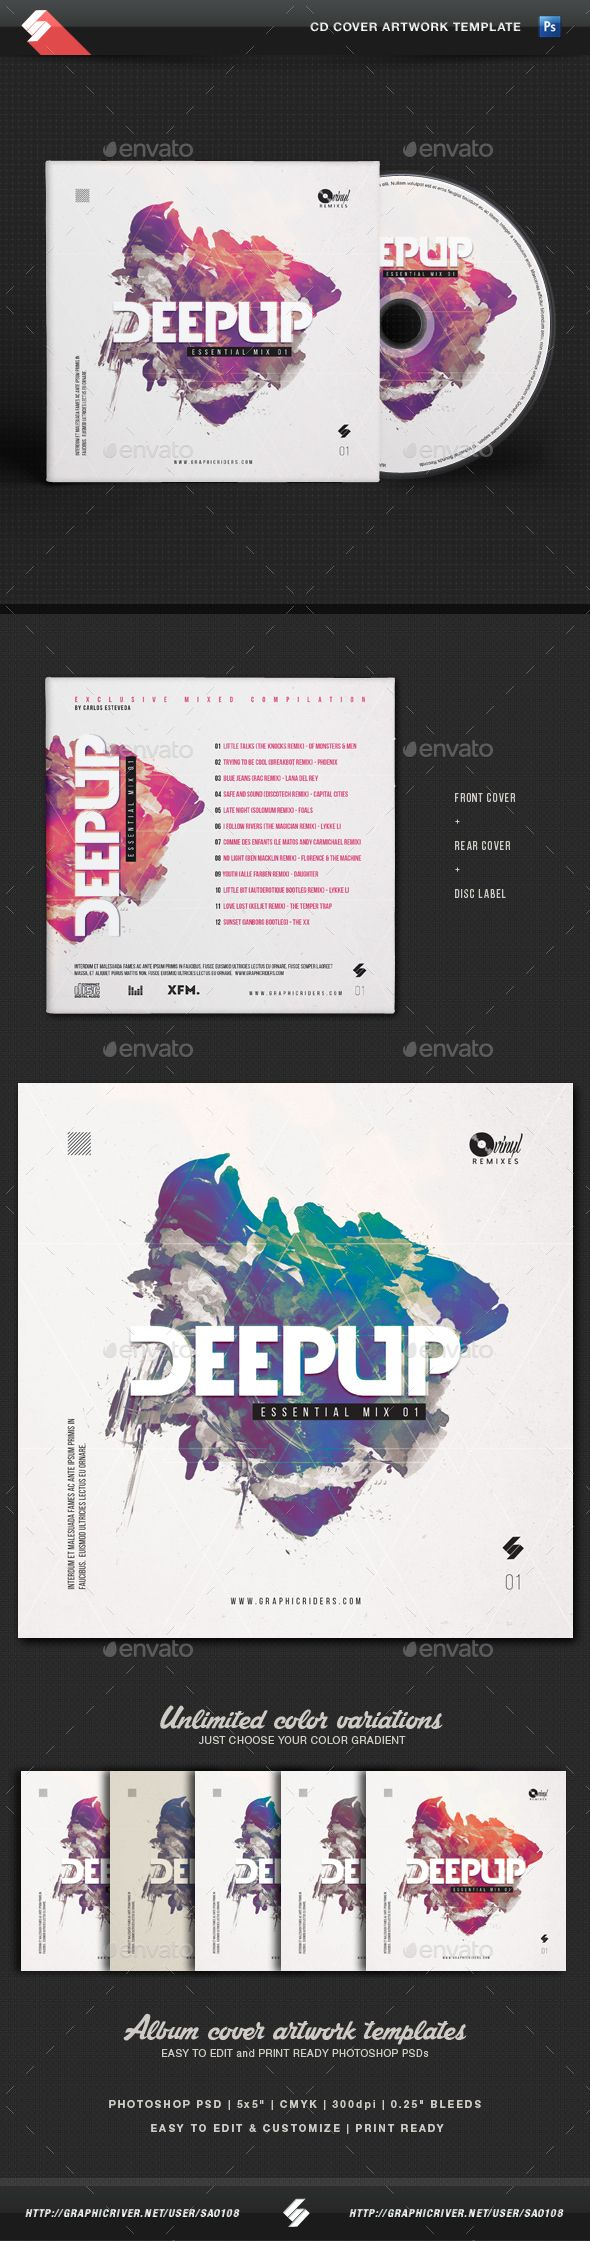 Deep Up  Dj Mix CD Cover Artwork Template — Photoshop PSD #multicolor #electro • Available here → https://graphicriver.net/item/deep-up-dj-mix-cd-cover-artwork-template/14879611?ref=pxcr